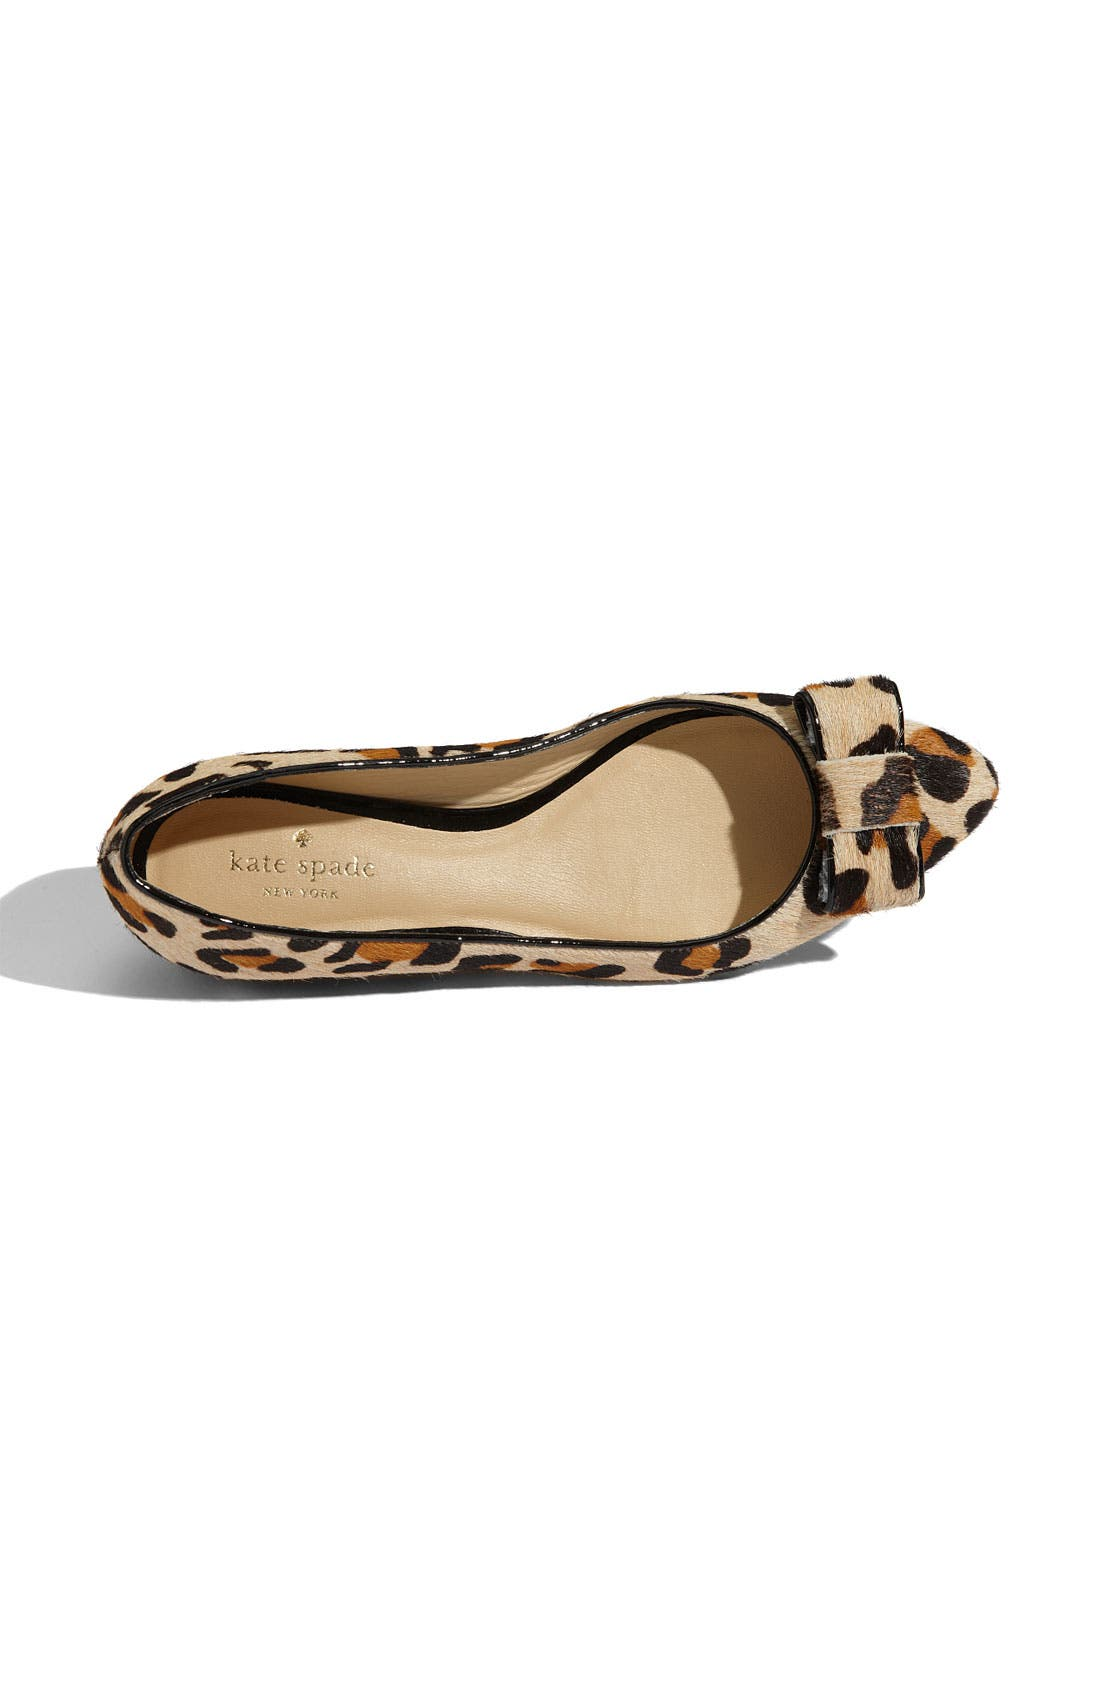 'elise' leopard print calf hair flat,                             Alternate thumbnail 3, color,                             Large Leopard Printed